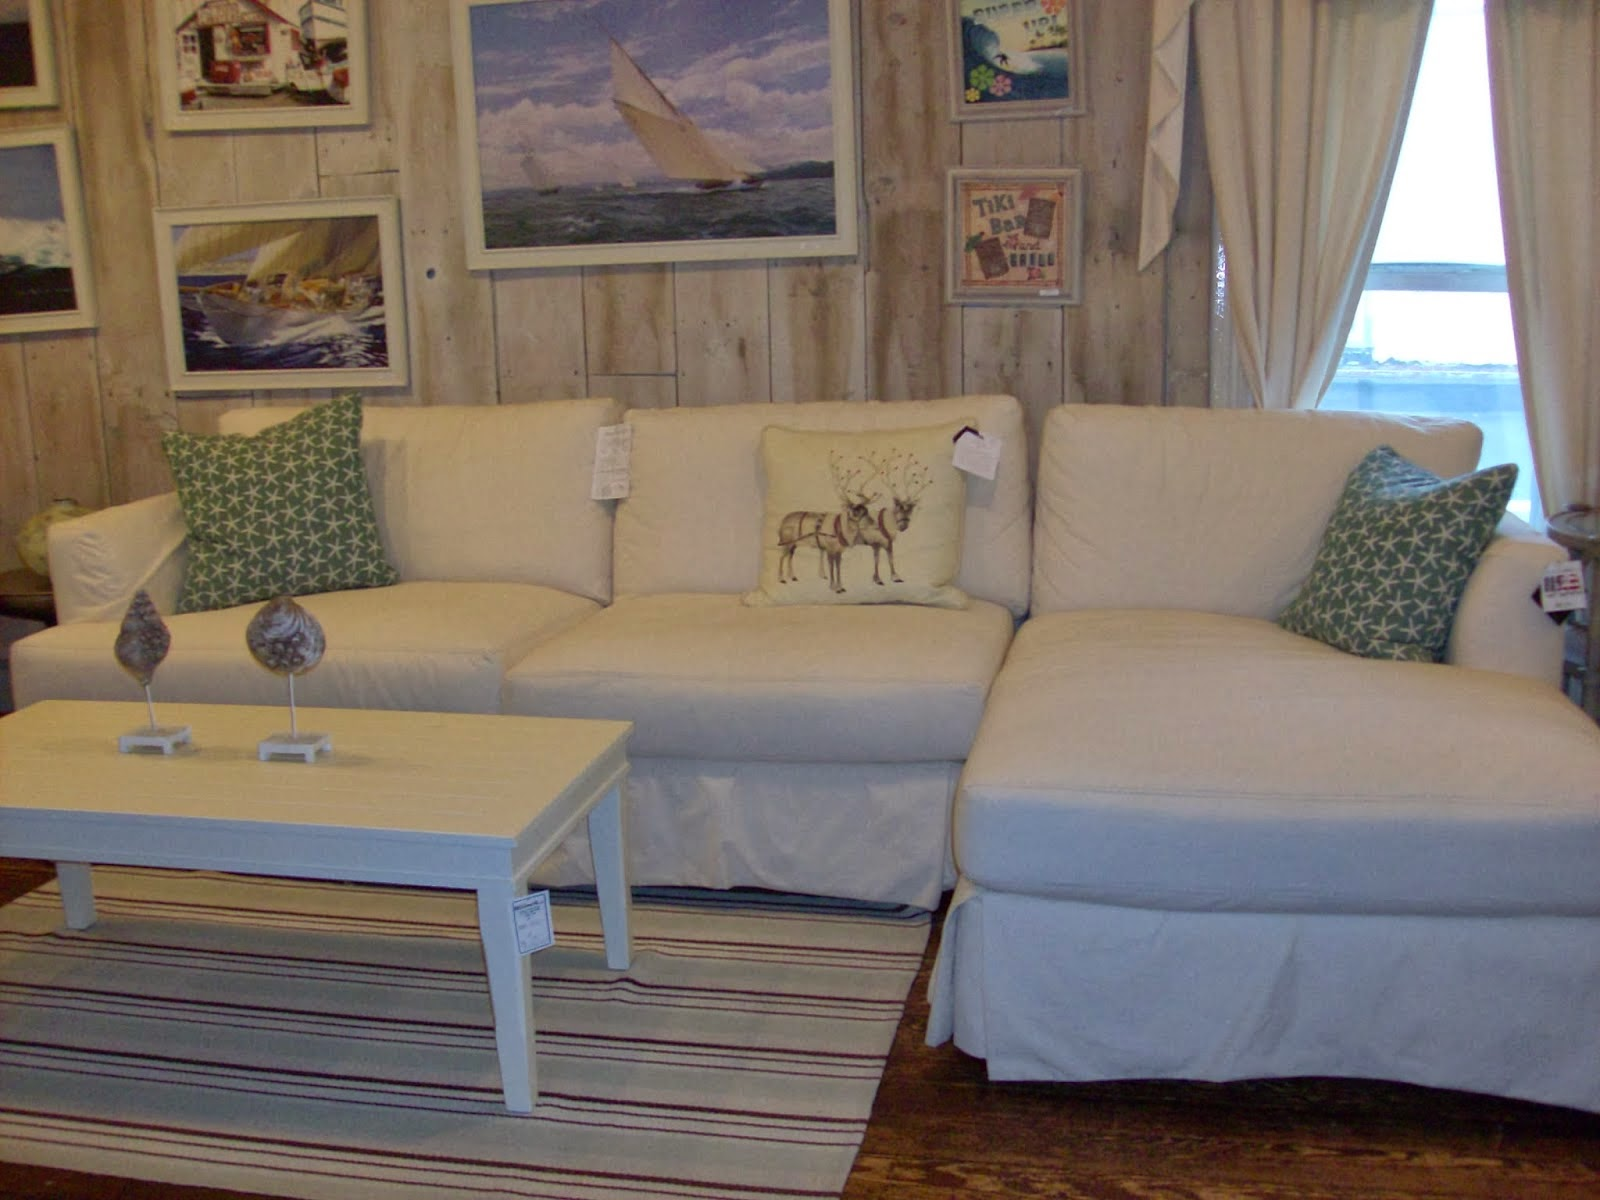 Hildreth s Home Goods Sofa or Sectional Which one should you choose